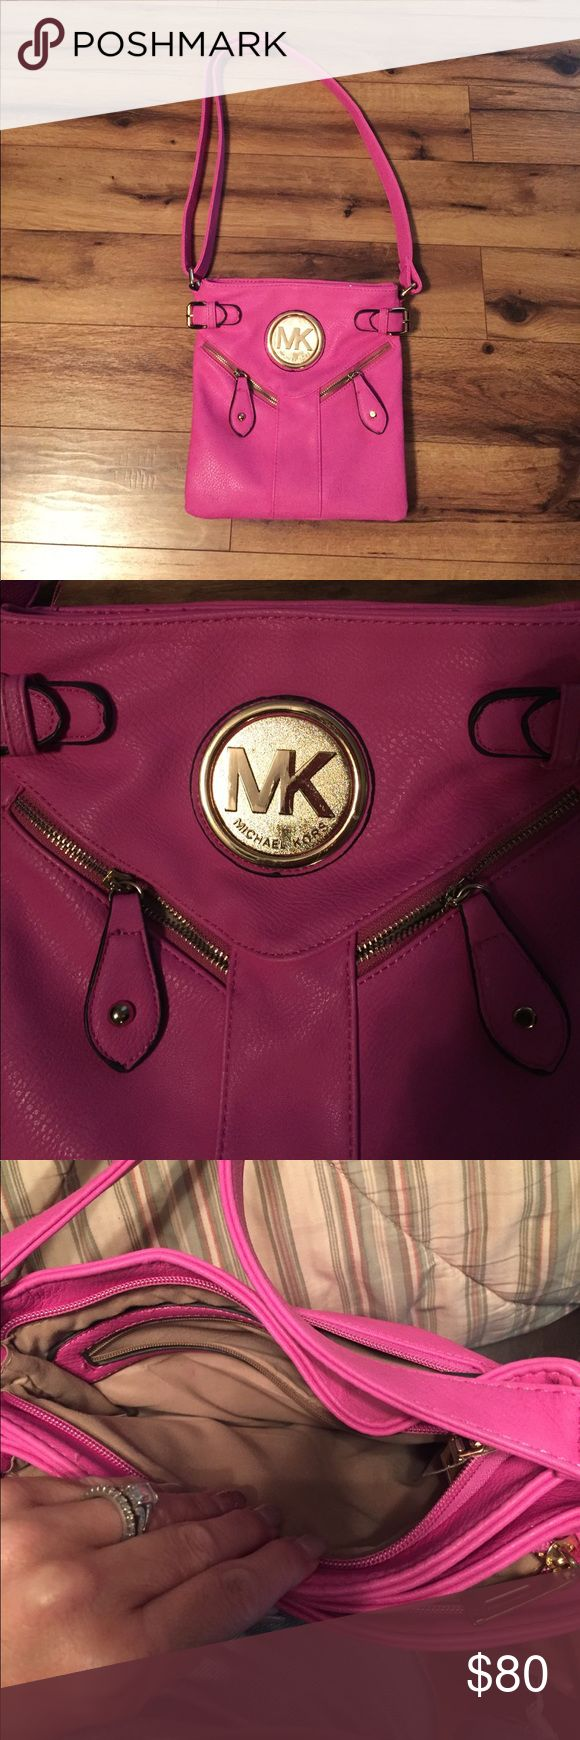 Michael kors purse Pink almost new. Only uses few days Michael Kors Bags Crossbody Bags